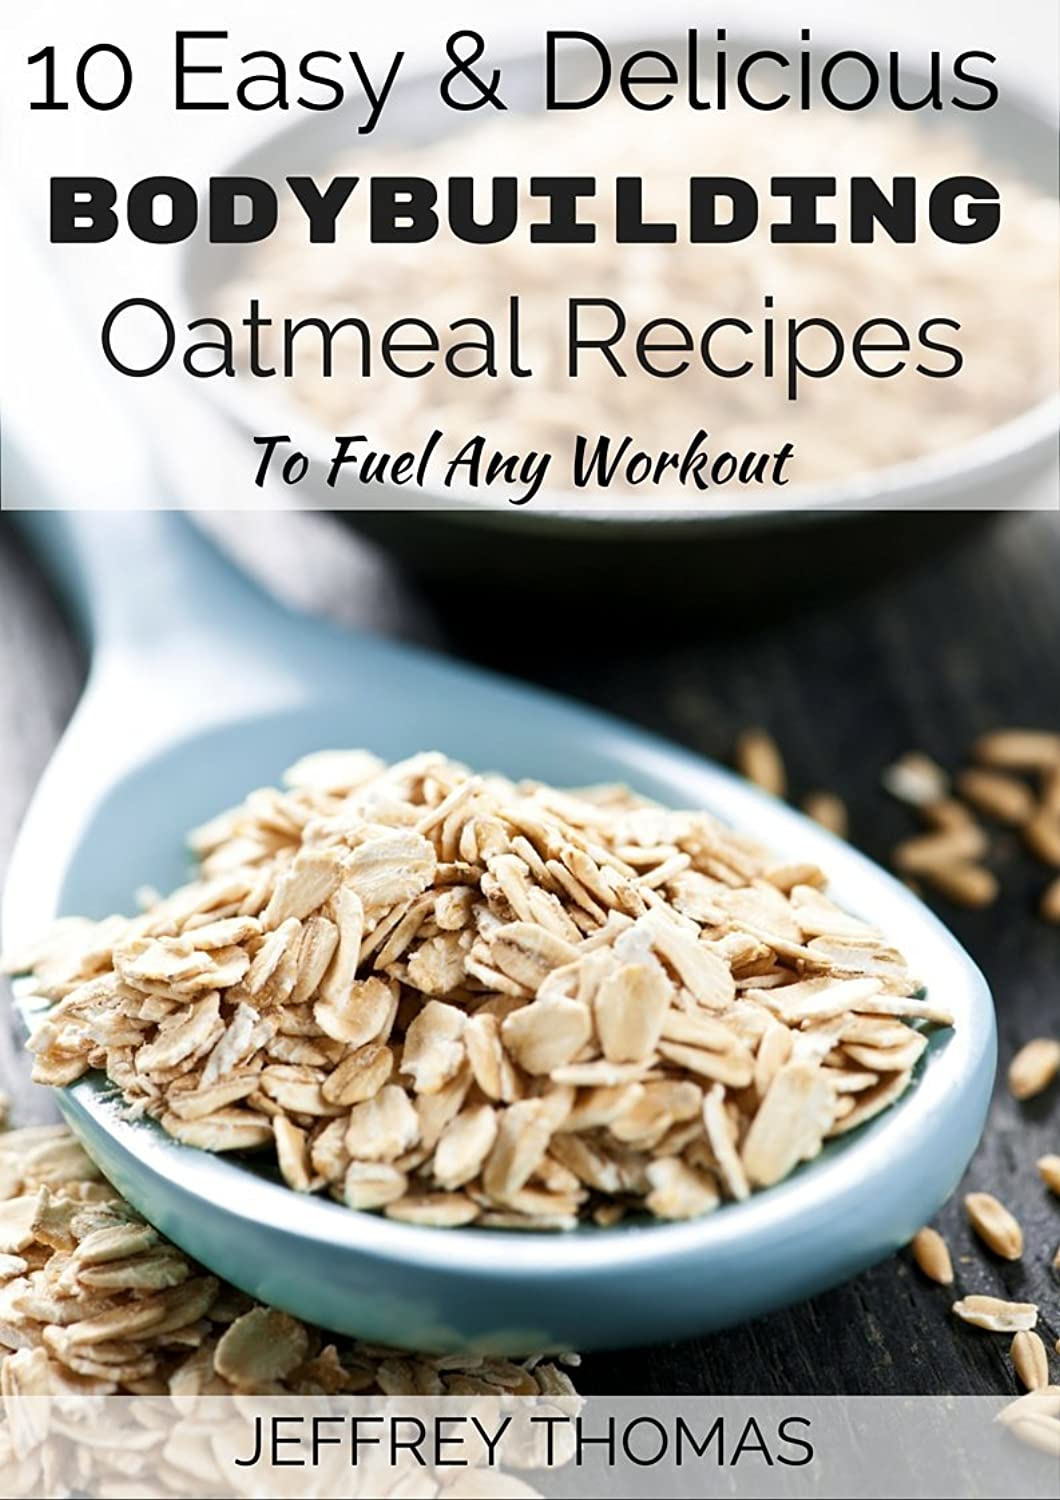 10 Easy & Delicious Bodybuilding Oatmeal Recipes To Fuel Any Workout (English Edition)